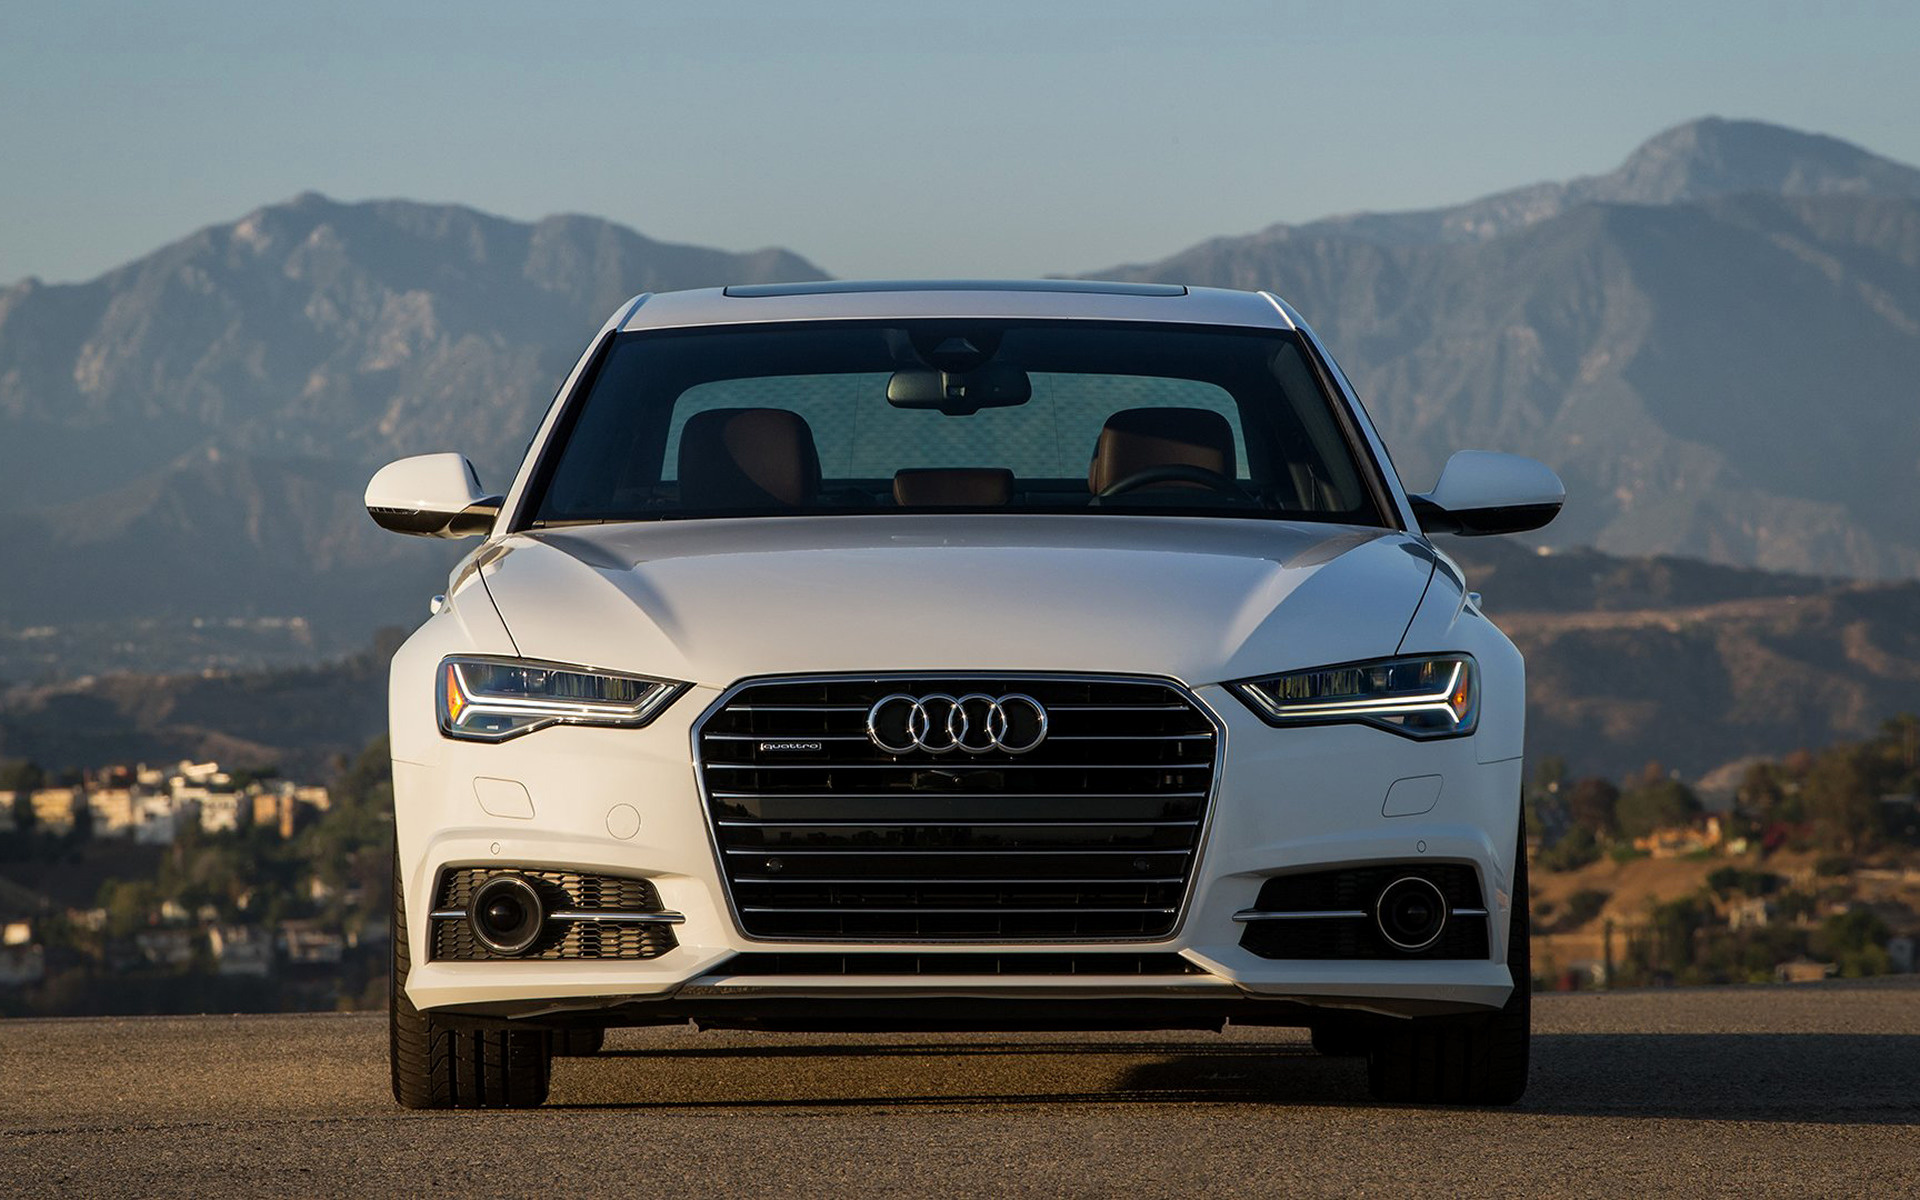 2015 Audi A6 Sedan S line (US) - Wallpapers and HD Images ...